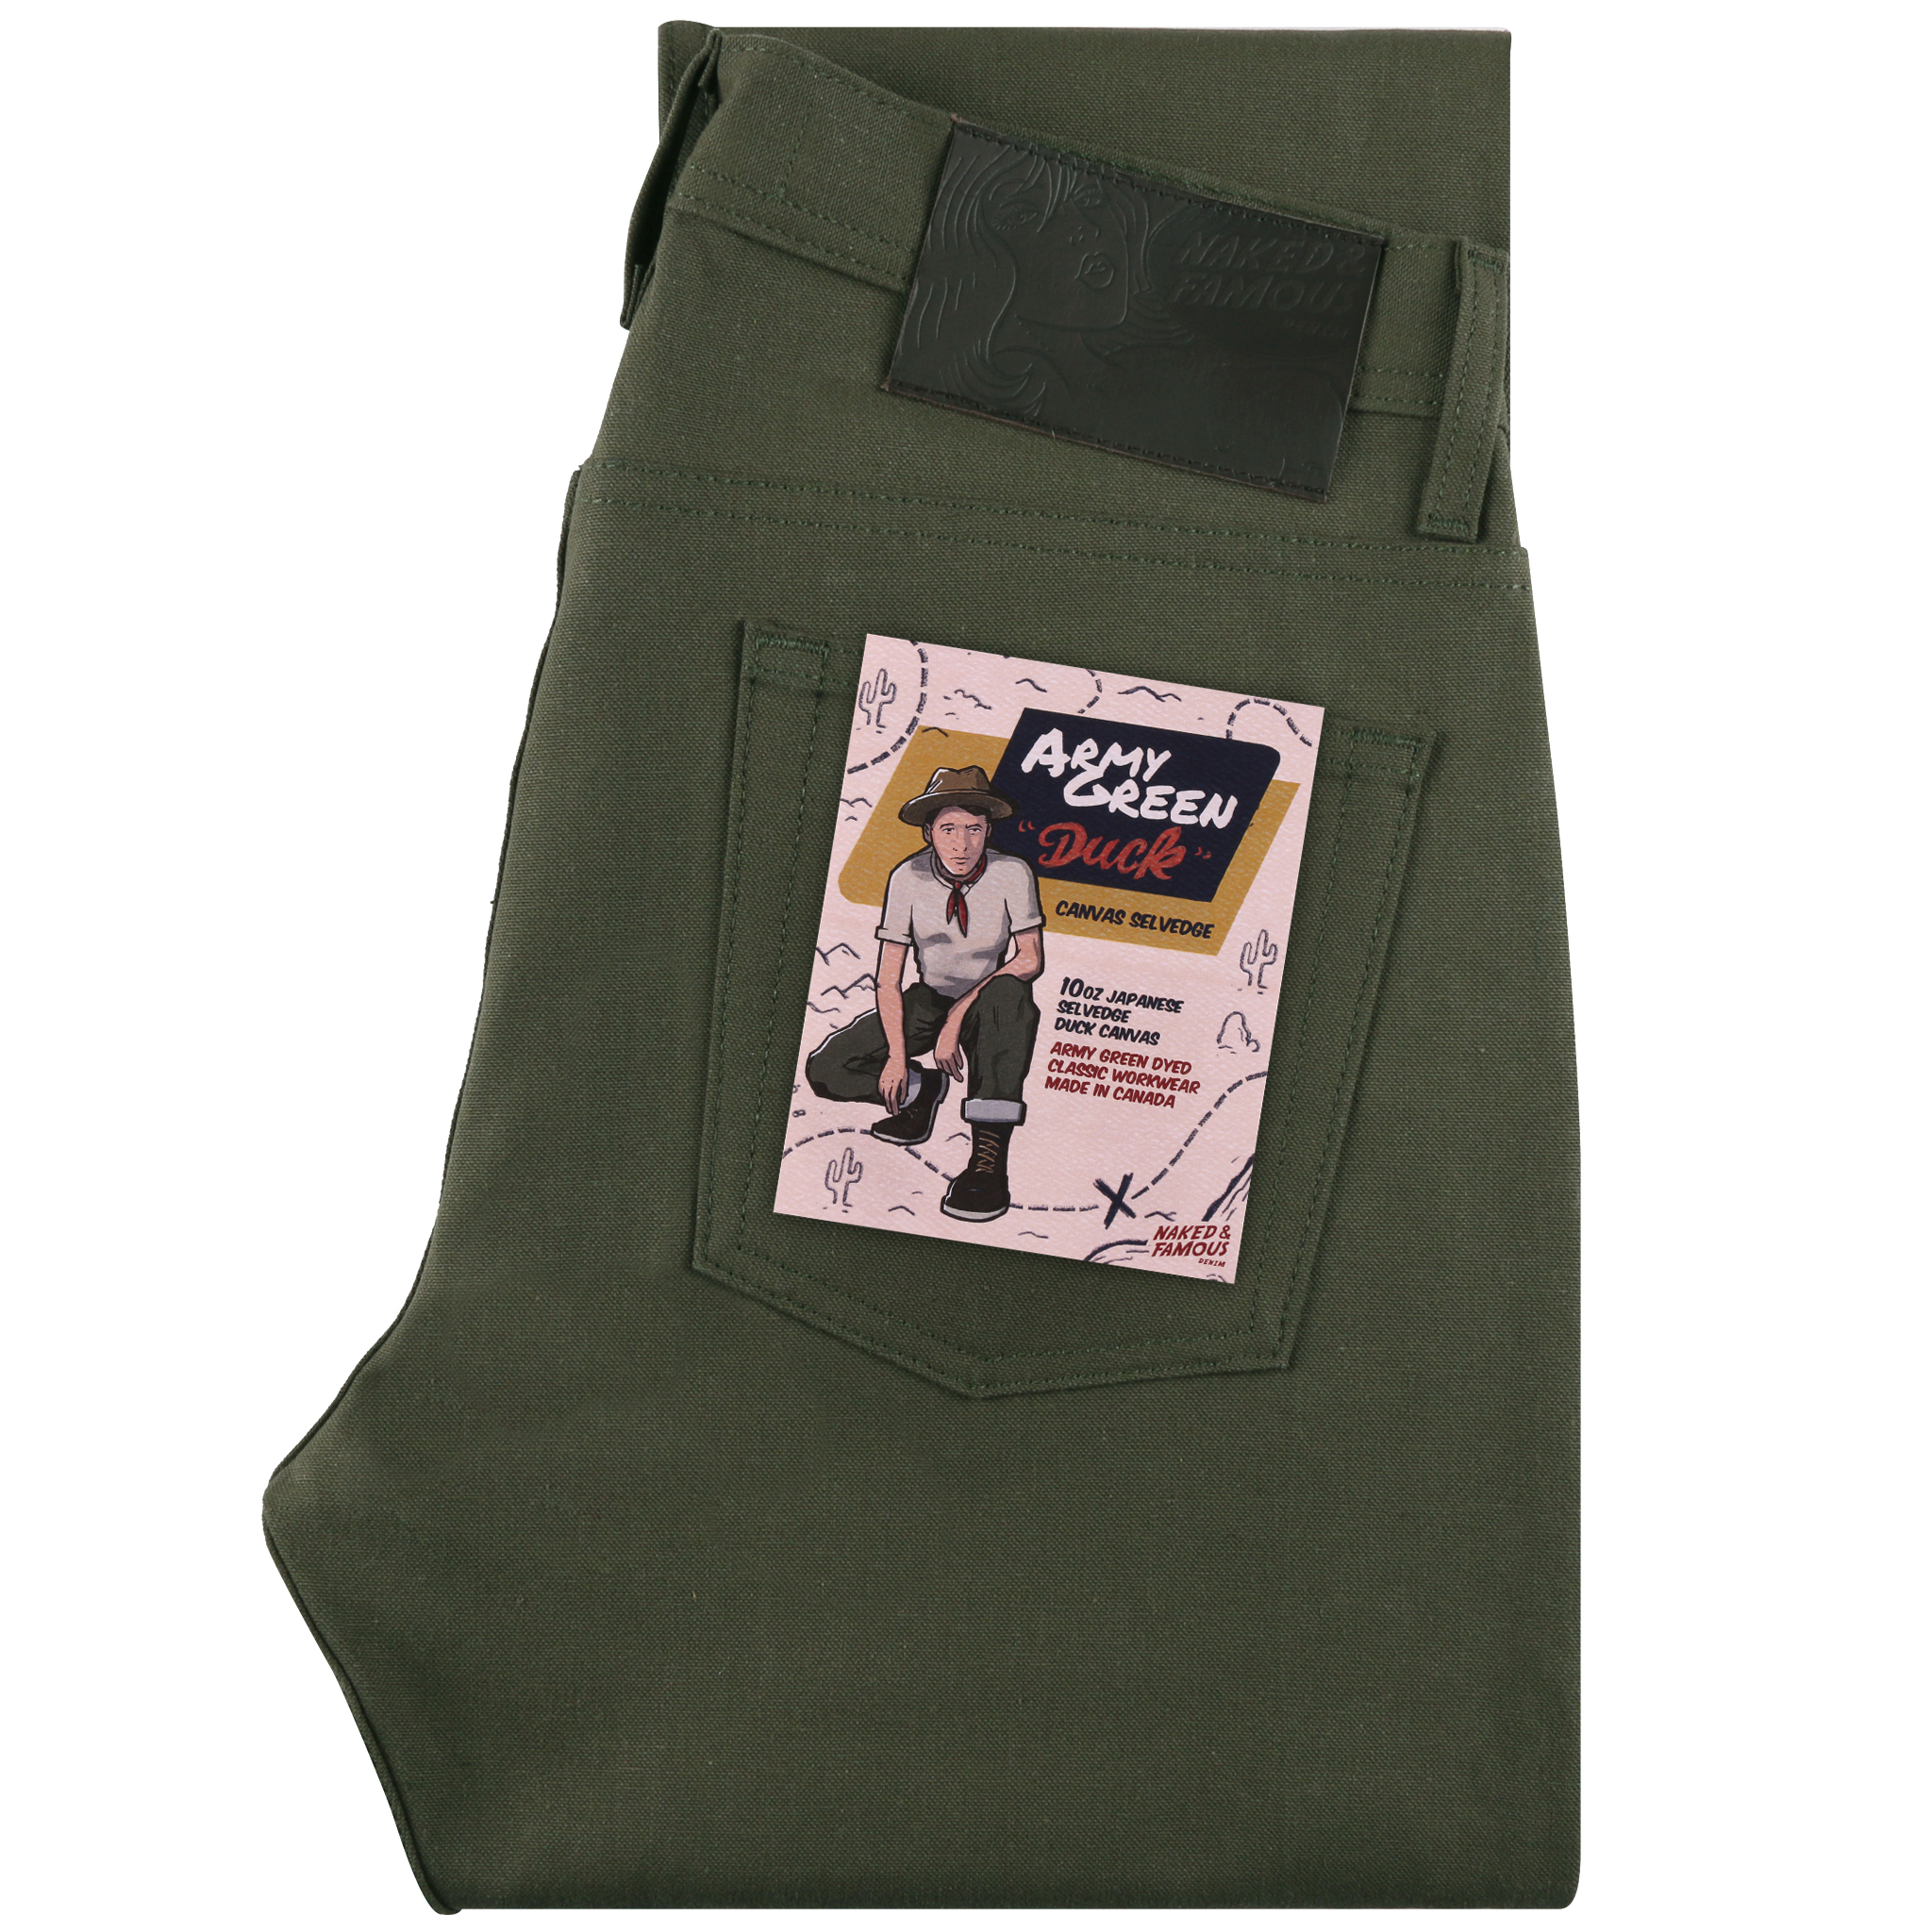 Army Green Duck Canvas selvedge - Super Guy / Weird Guy / Easy Guy